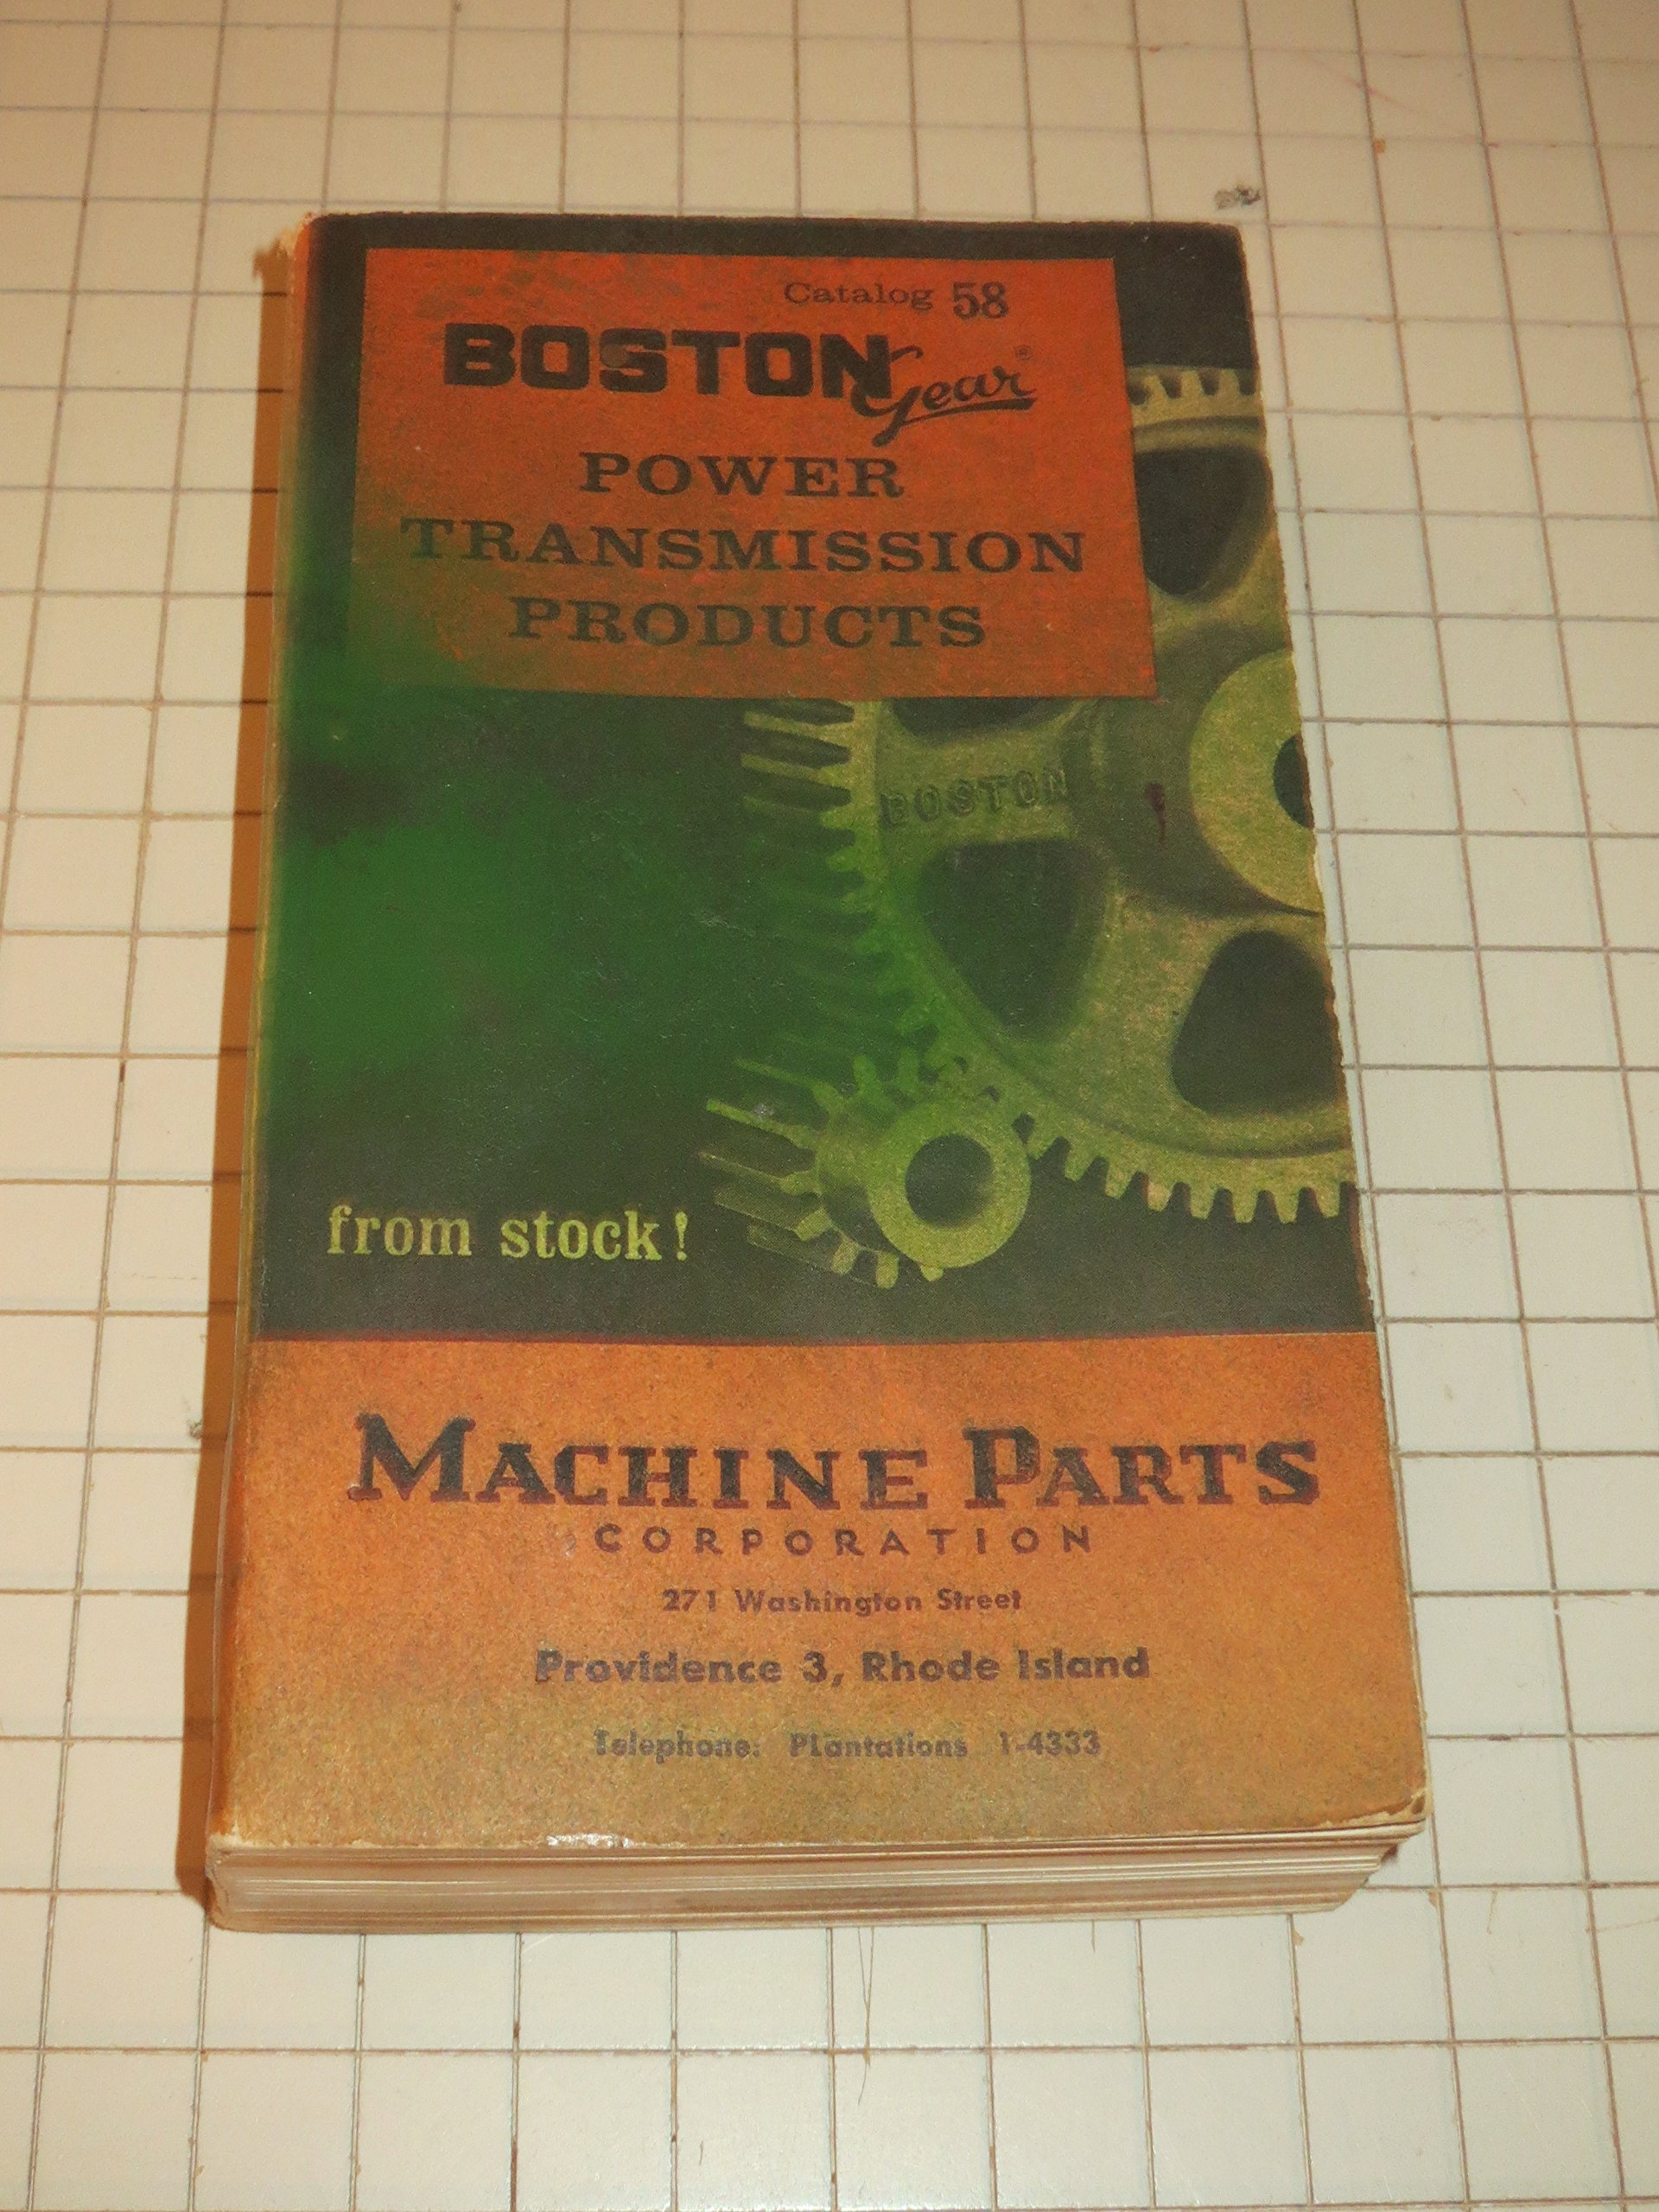 Boston Gear Power Transmission Products – Catalog 58